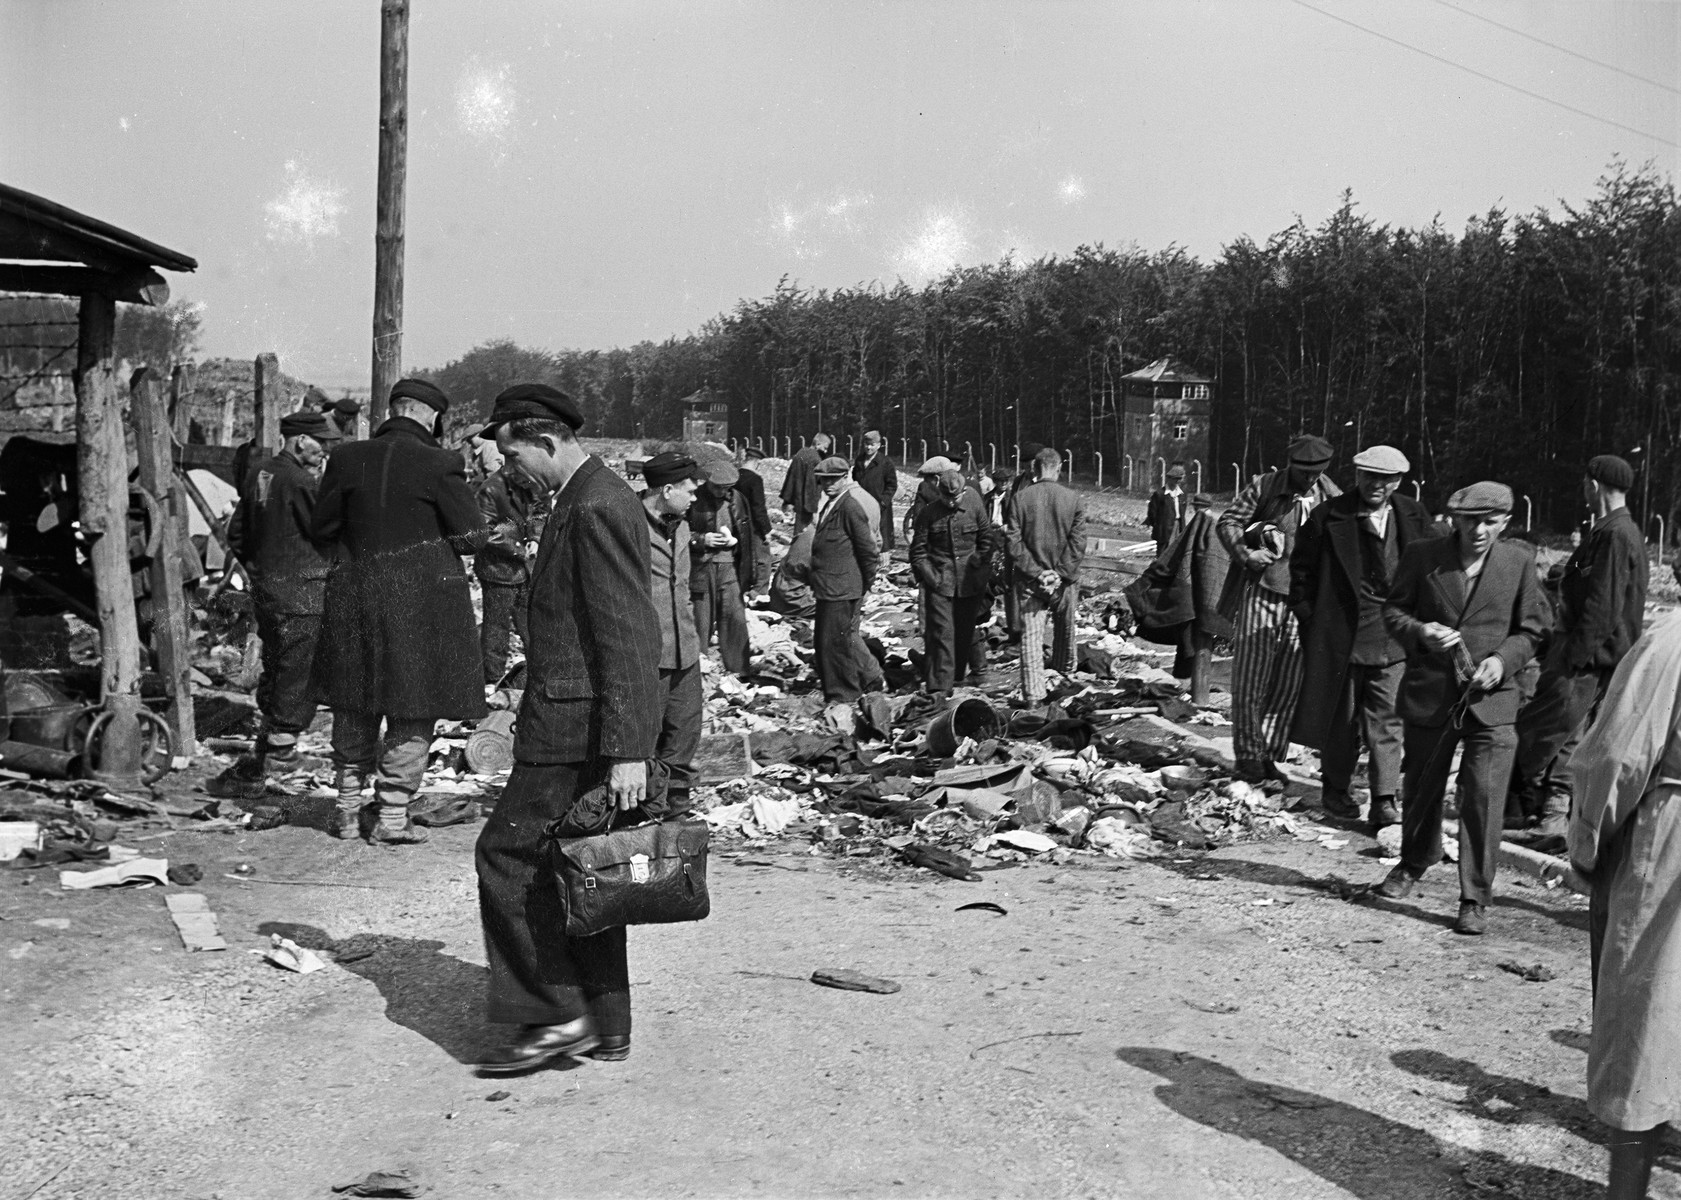 Former concentration camp inmates search through clothing and other effects after the liberation of Buchenwald.